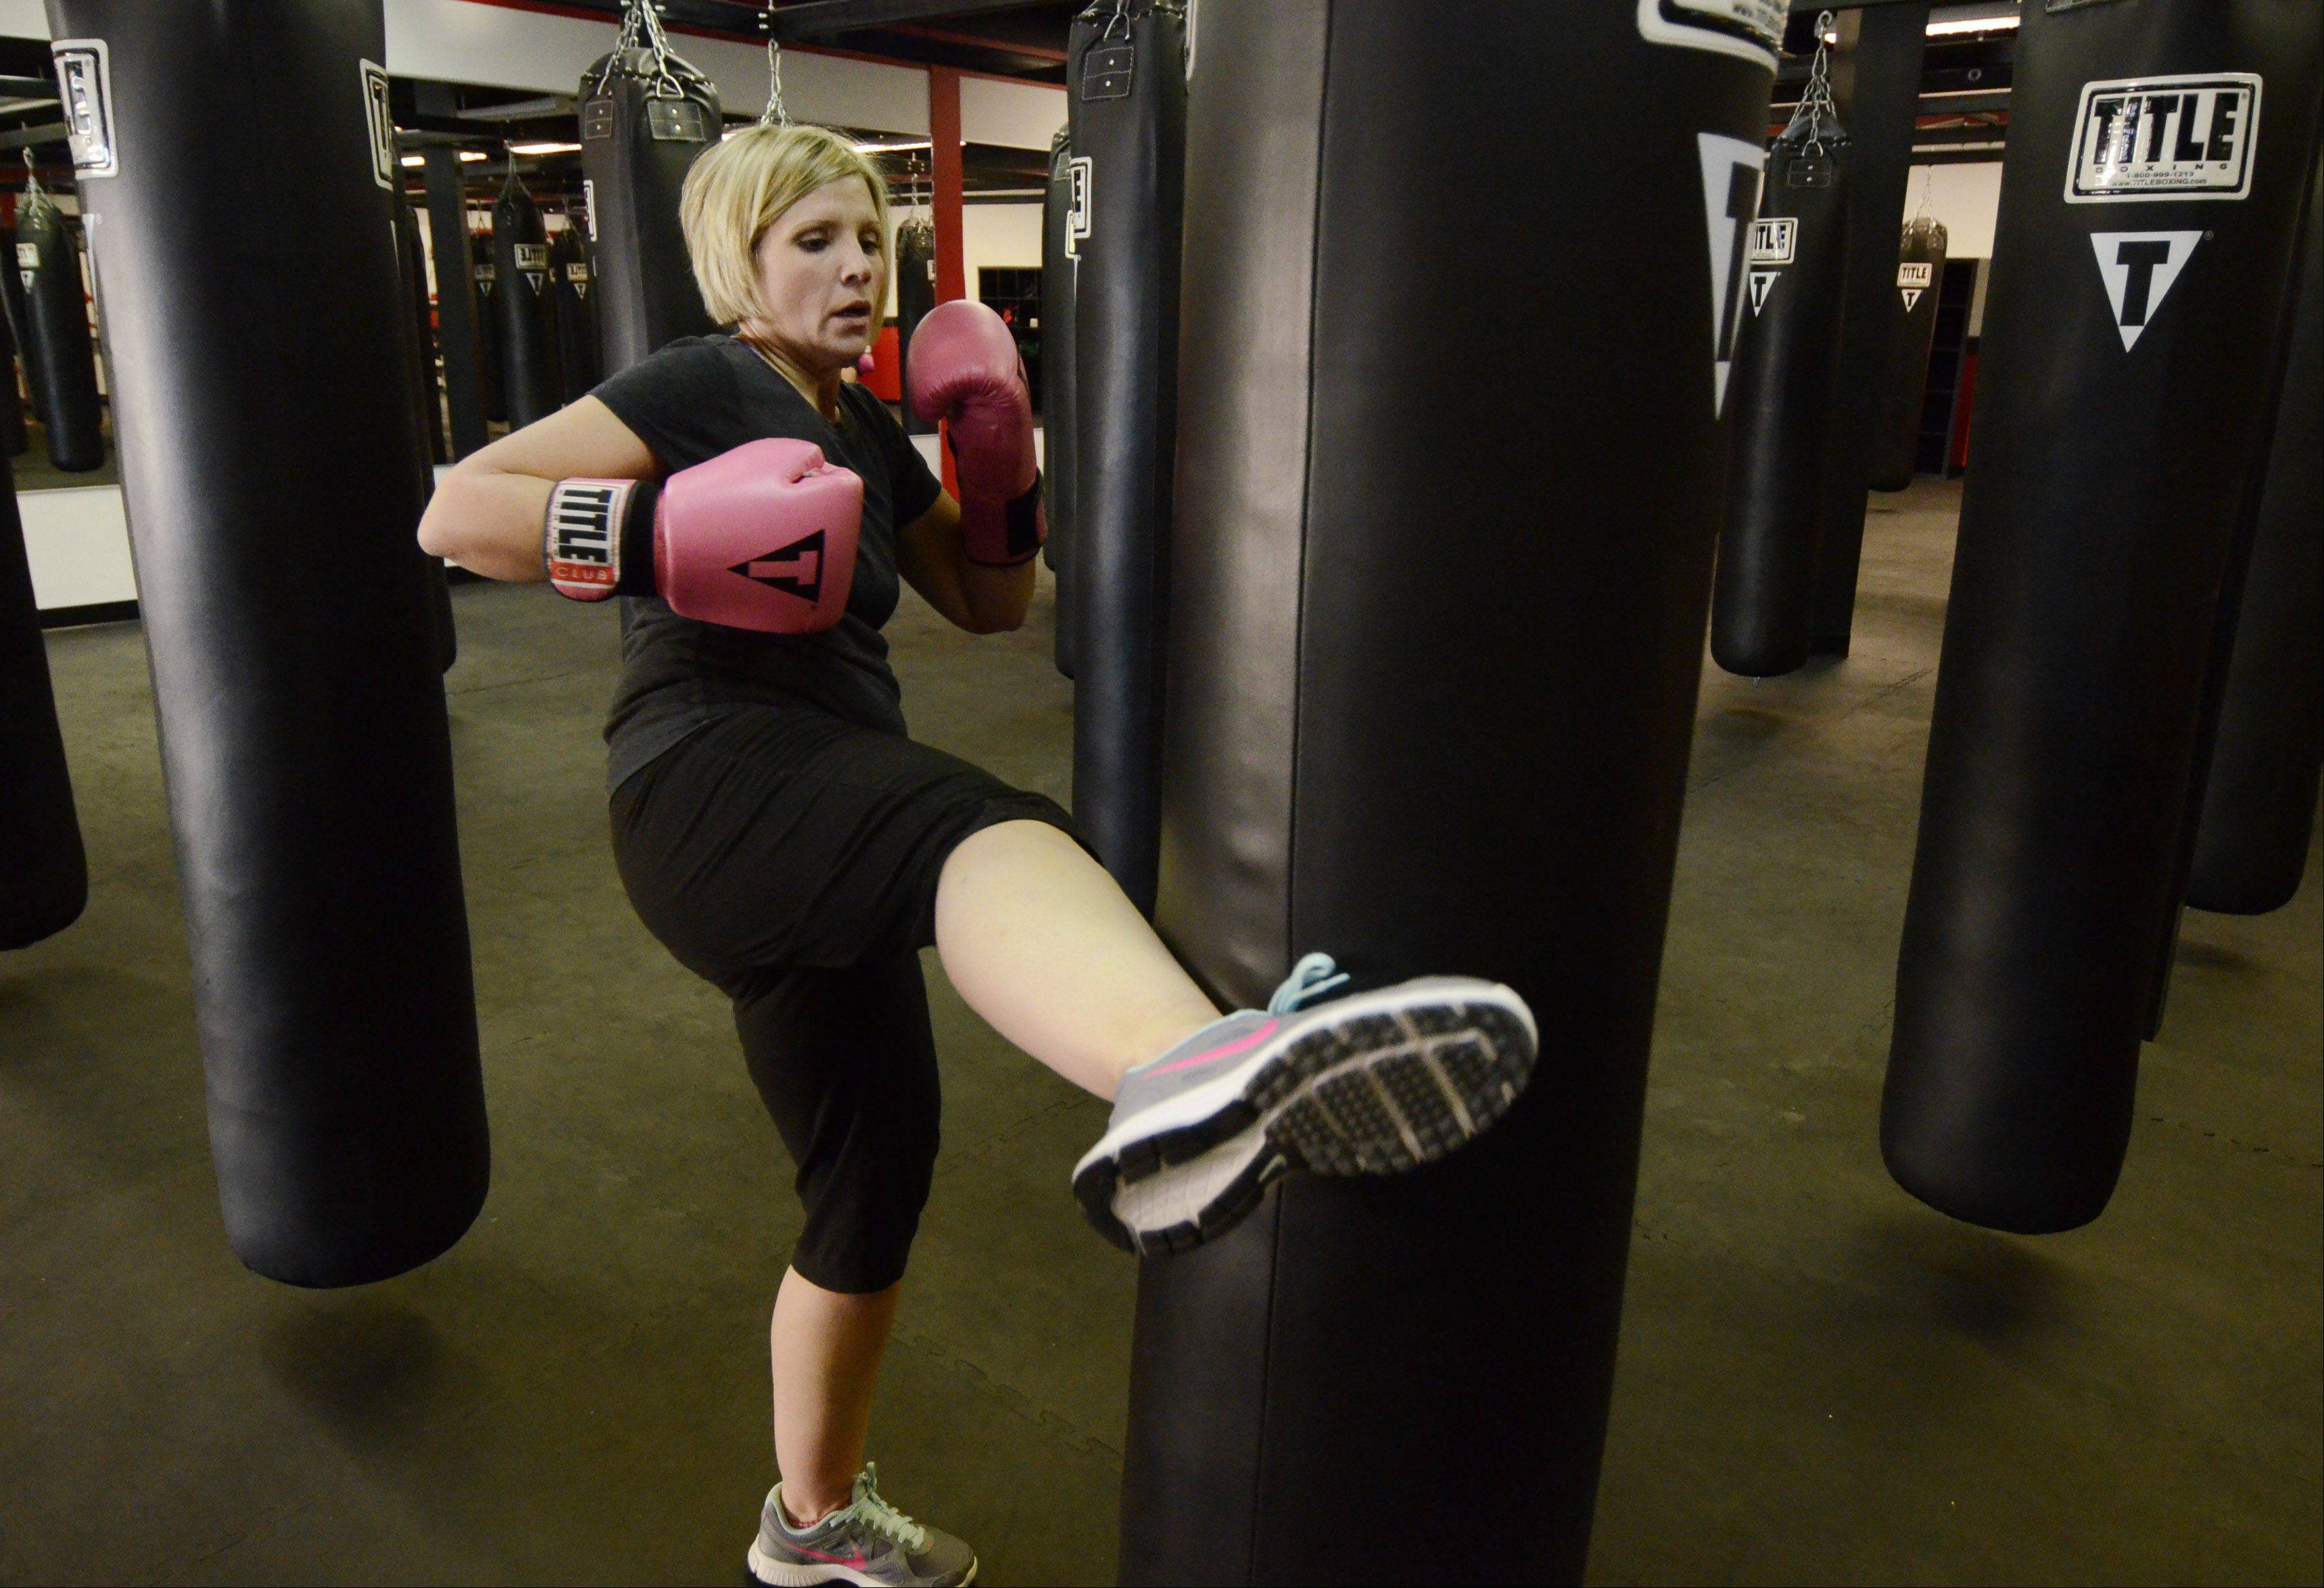 Erin Alsakhria, the mother of two boys, works out during the Power Hour class at Title Boxing Club in Schaumburg.